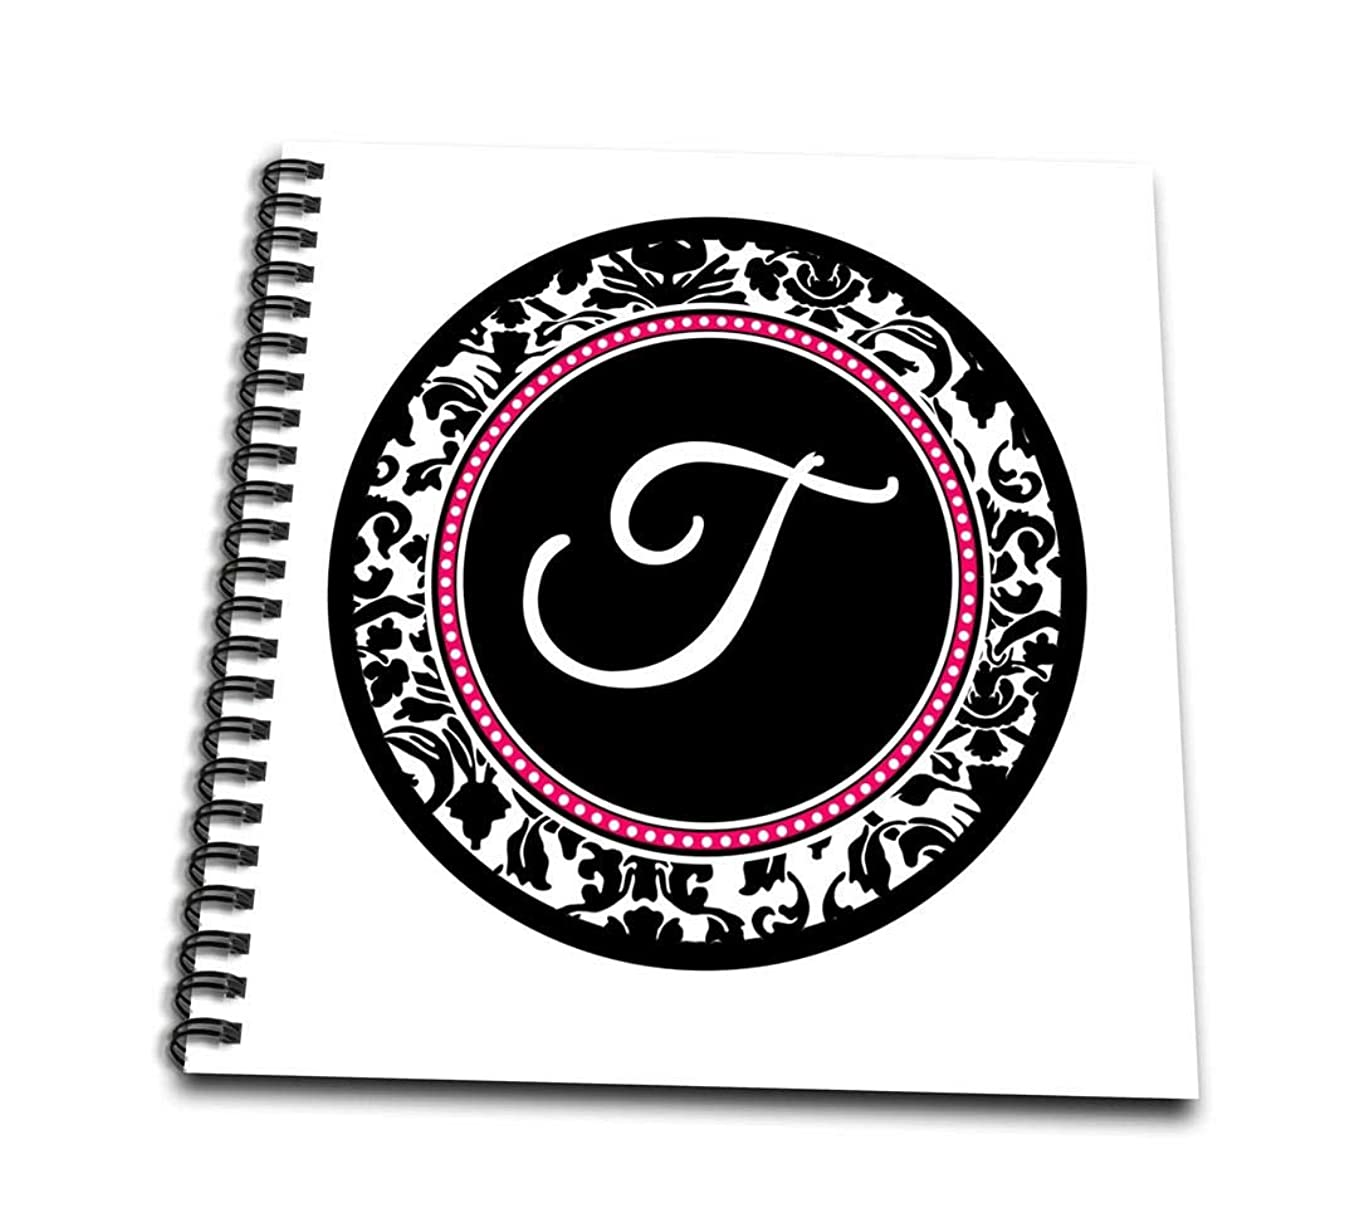 3dRose db_154612_1 Letter T Stylish Monogrammed Circle Girly Personal Initial Personalized Black Damask with Hot Pink Drawing Book, 8